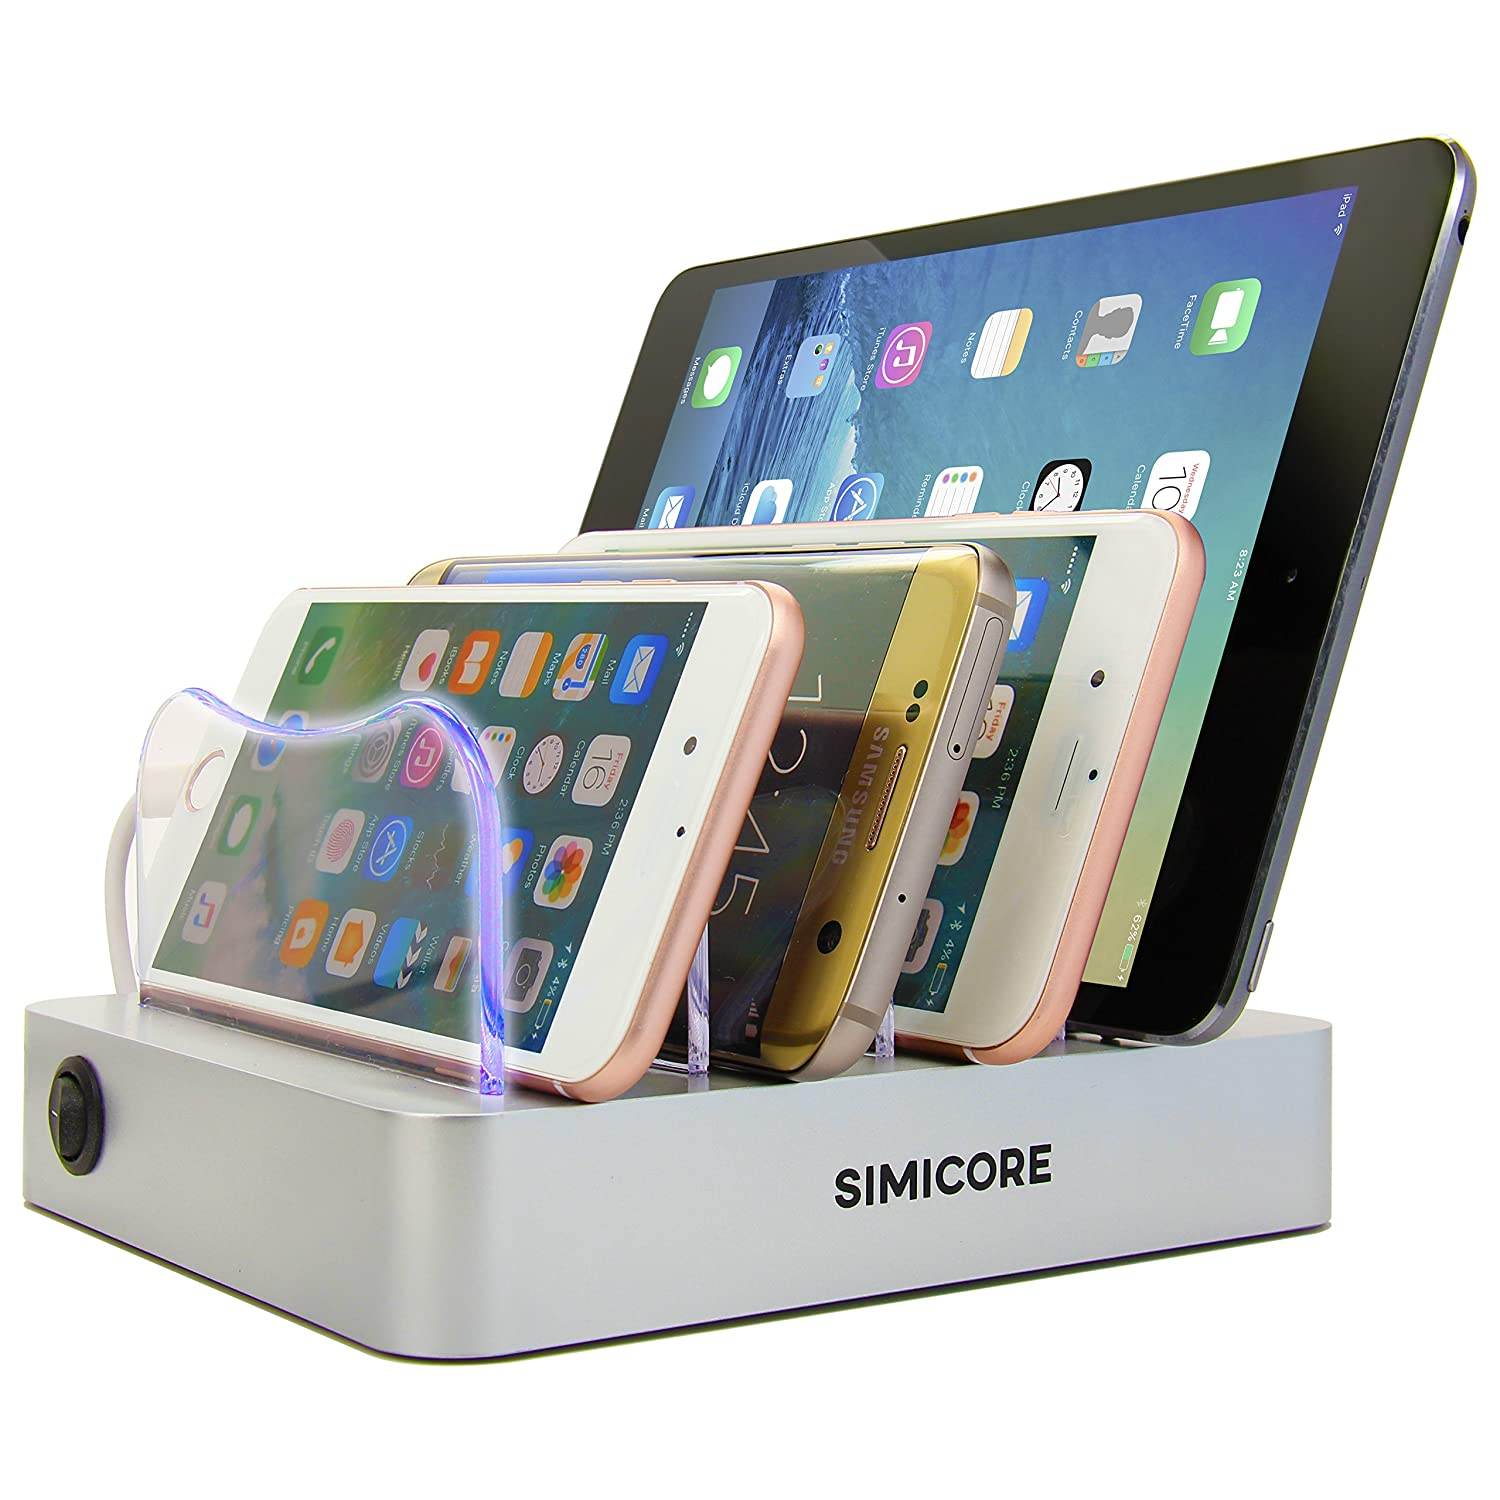 4-Port Compact Multiple USB Charger /& Phone Docking Station with Charging Status Indicator Simicore Smart Charging Station Dock /& Organizer for Smartphones Tablets /& Other Gadgets Silver